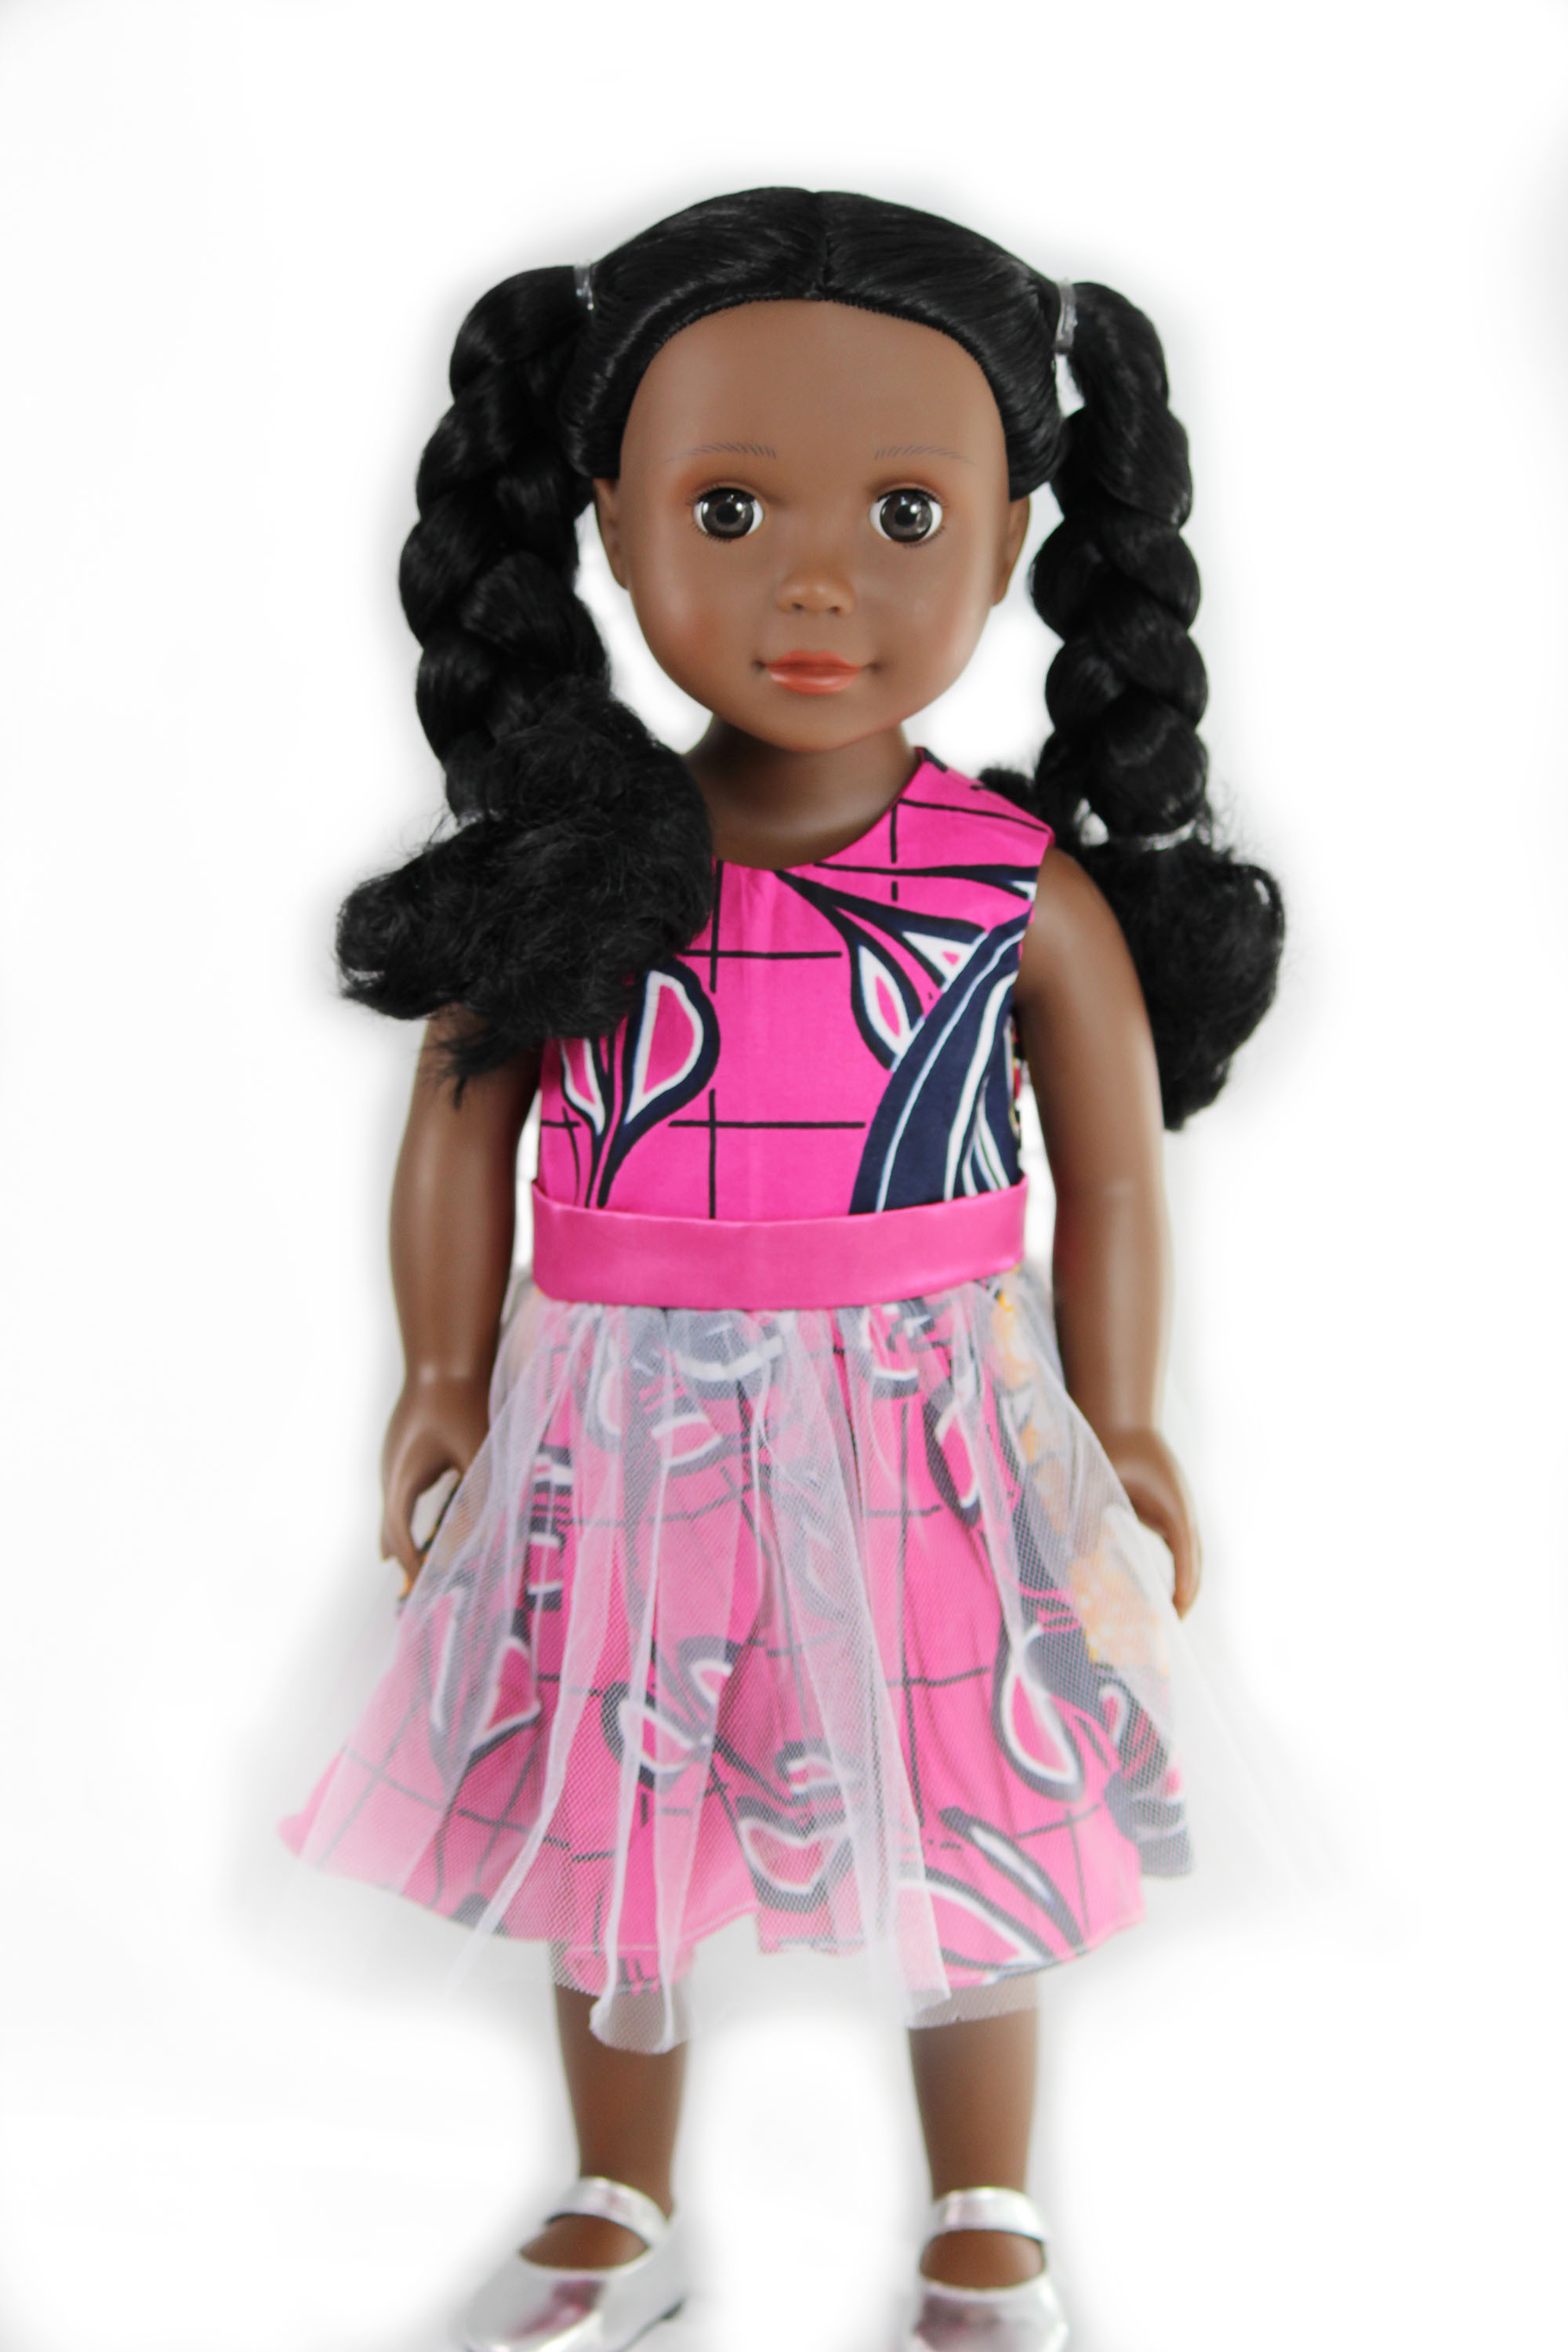 Ikuzi 18-inch Fashion Doll African American Doll With Braided Pigtails by